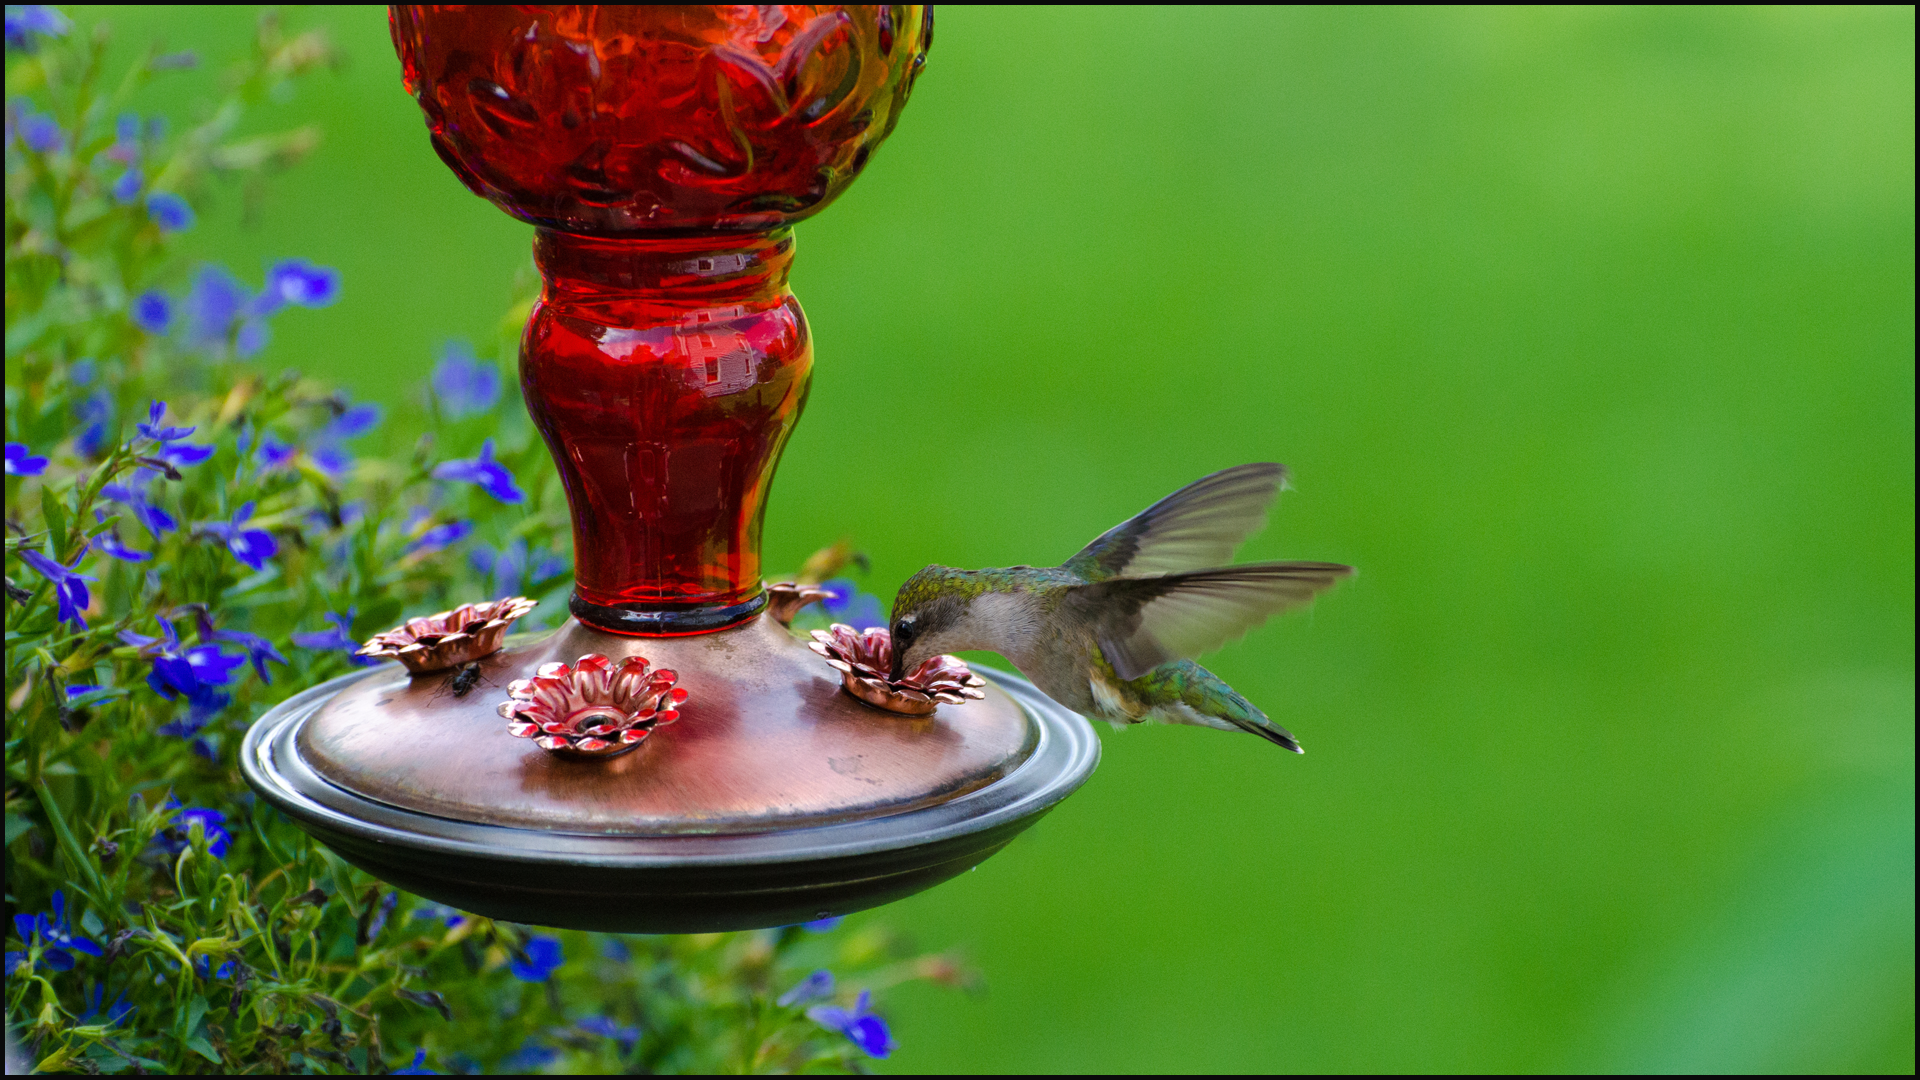 Top 10 Bird Feeding Mistakes